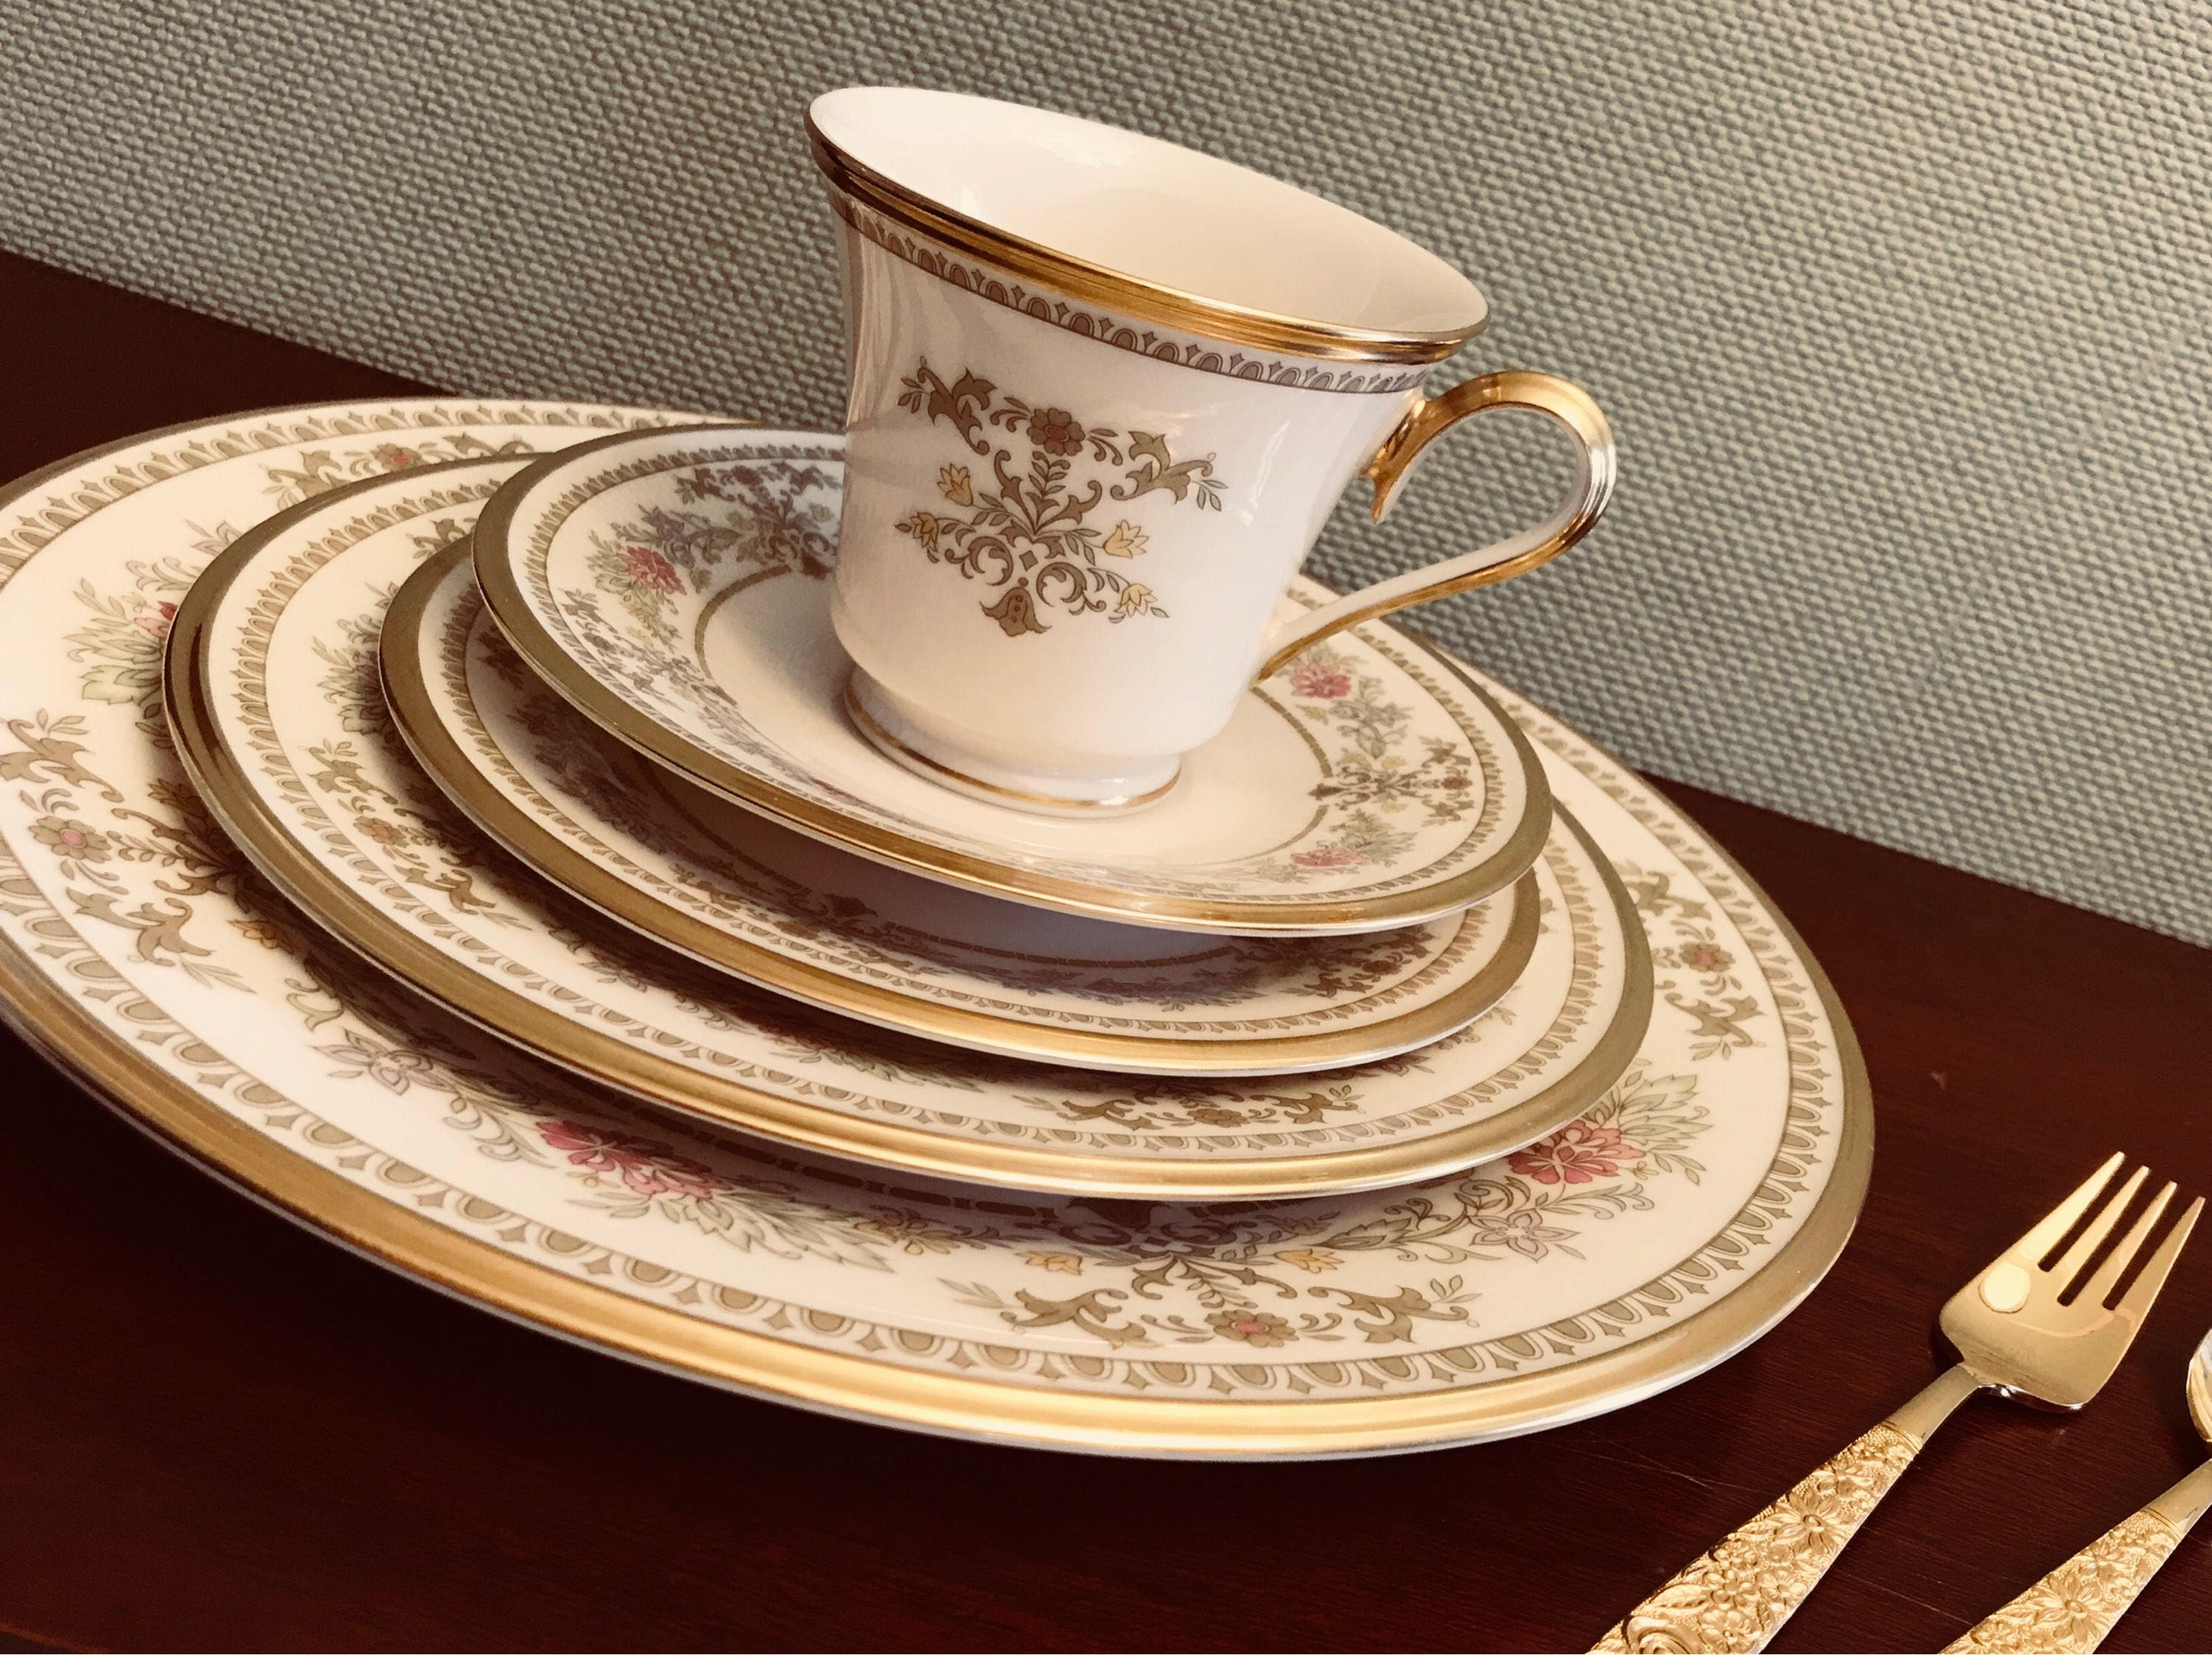 Lenox Wedding Gifts: Lenox China Castle Garden 5 Pc Place Setting, Luxury